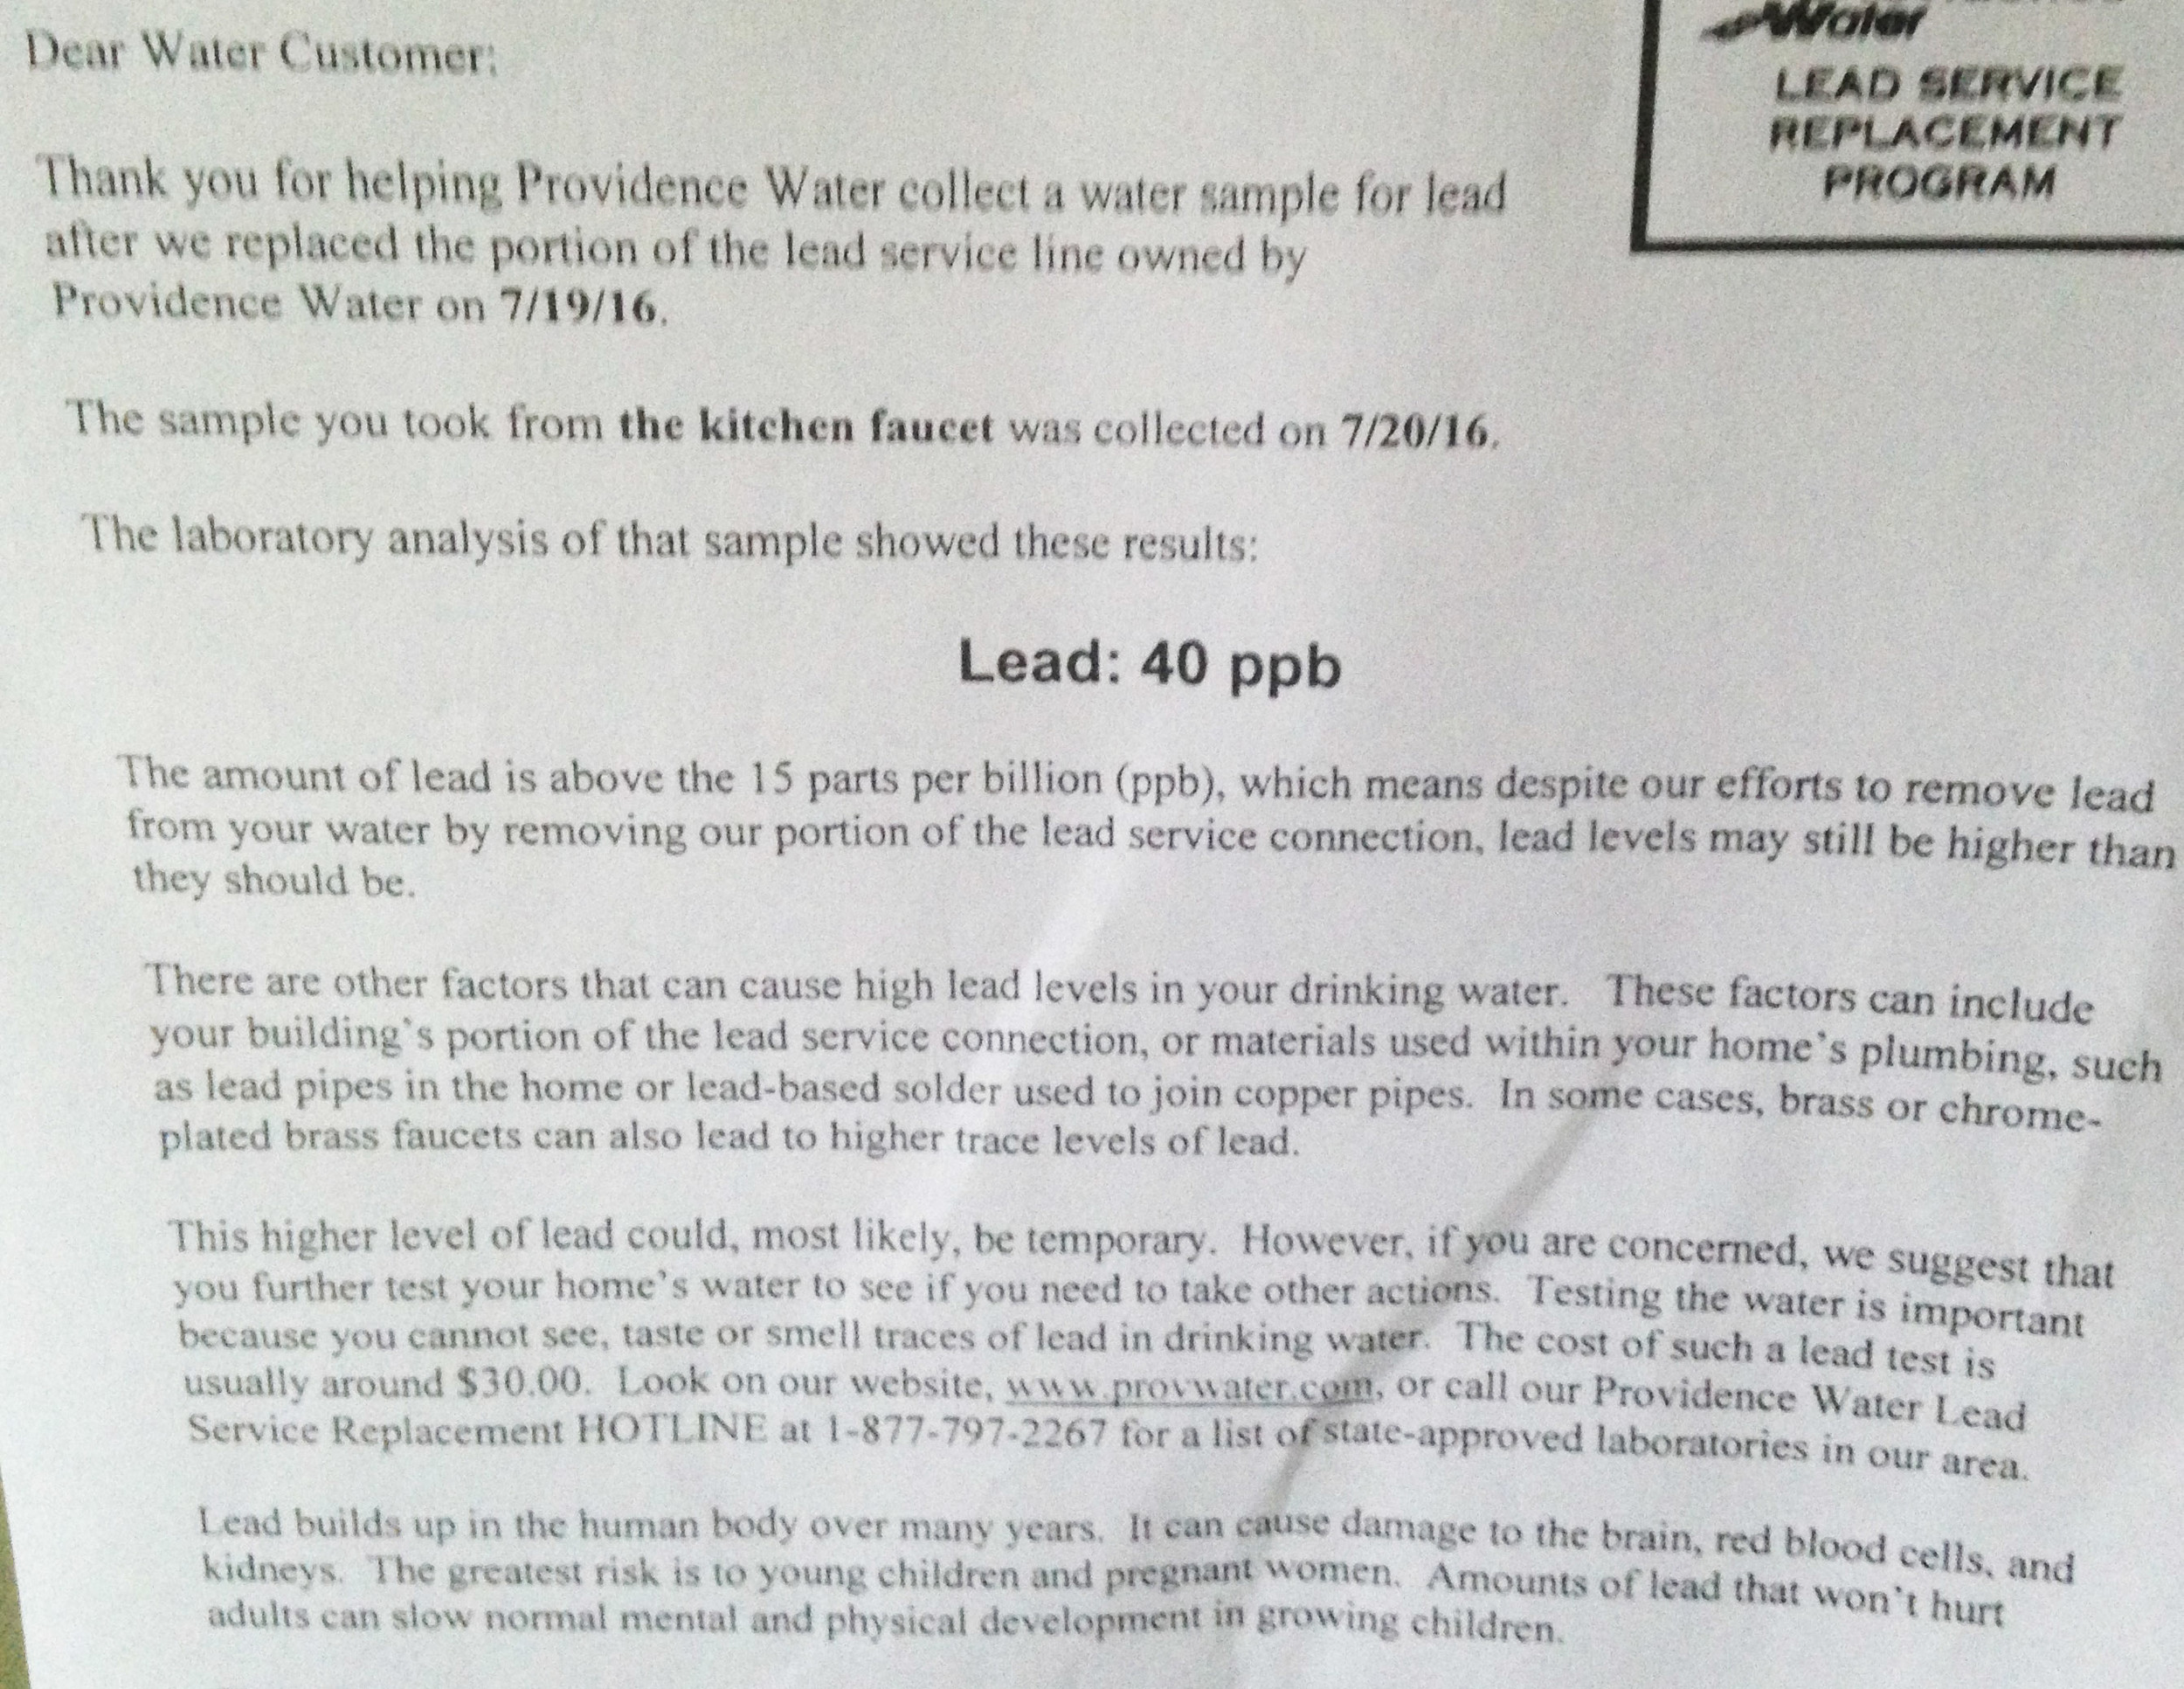 A letter from Providence Water Supply that water tested from a kitchen faucet contained 40 parts per billion of lead, exceeding the federal standard of 15 ppbs.